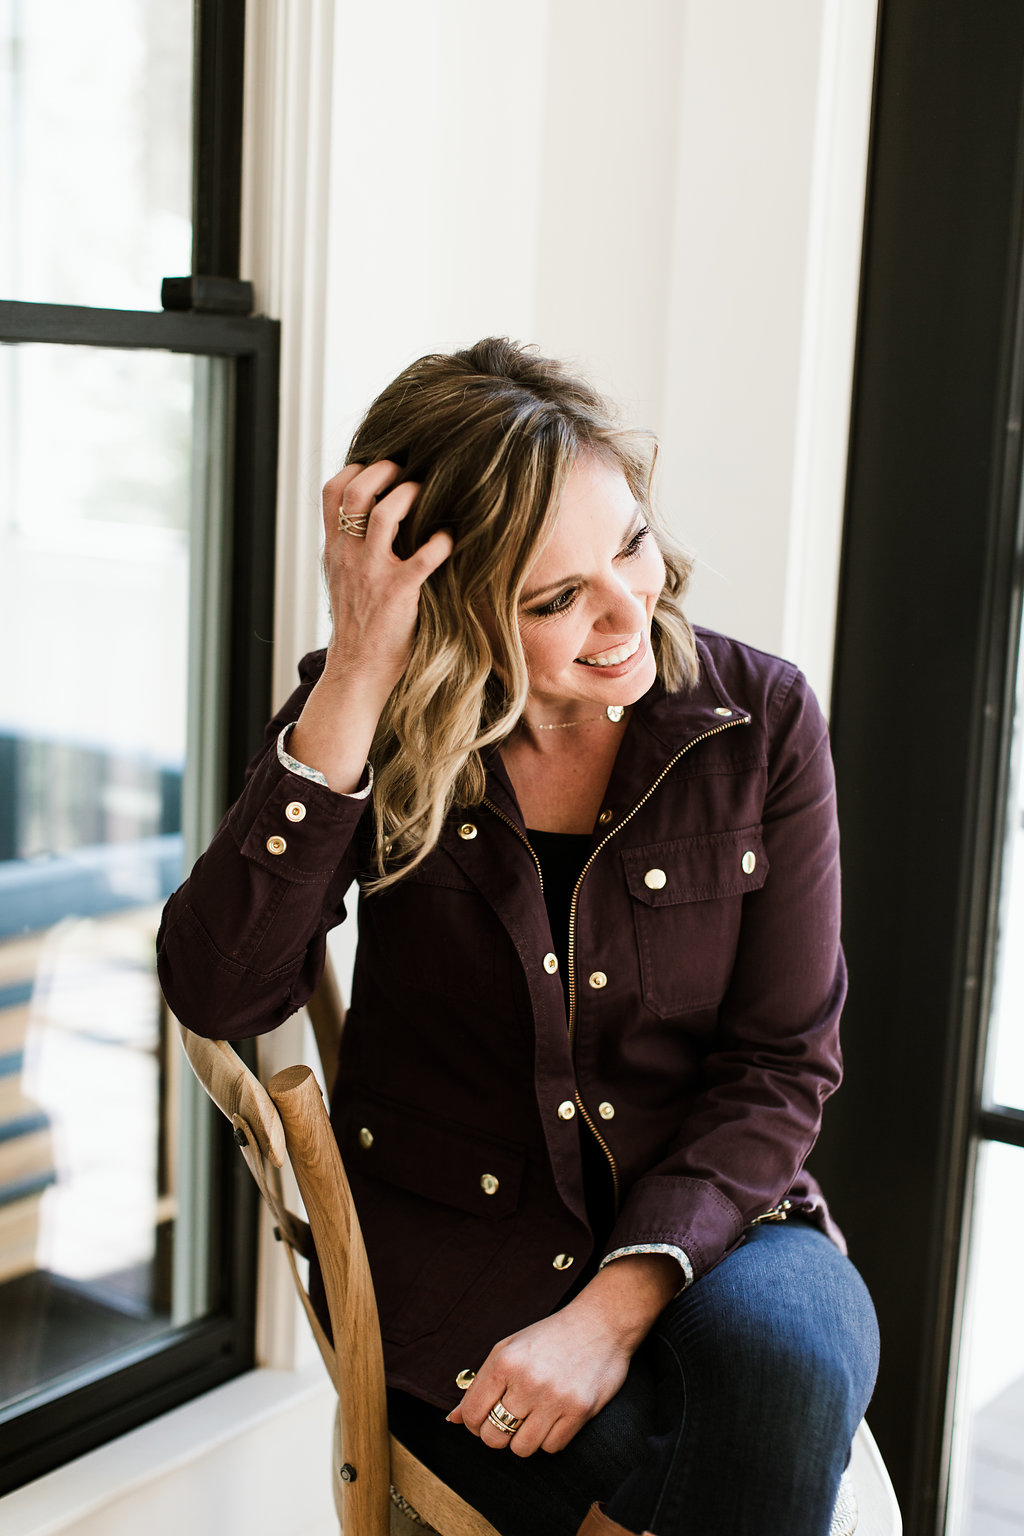 Kristin Fry, author of her book, Beyond the Swipe